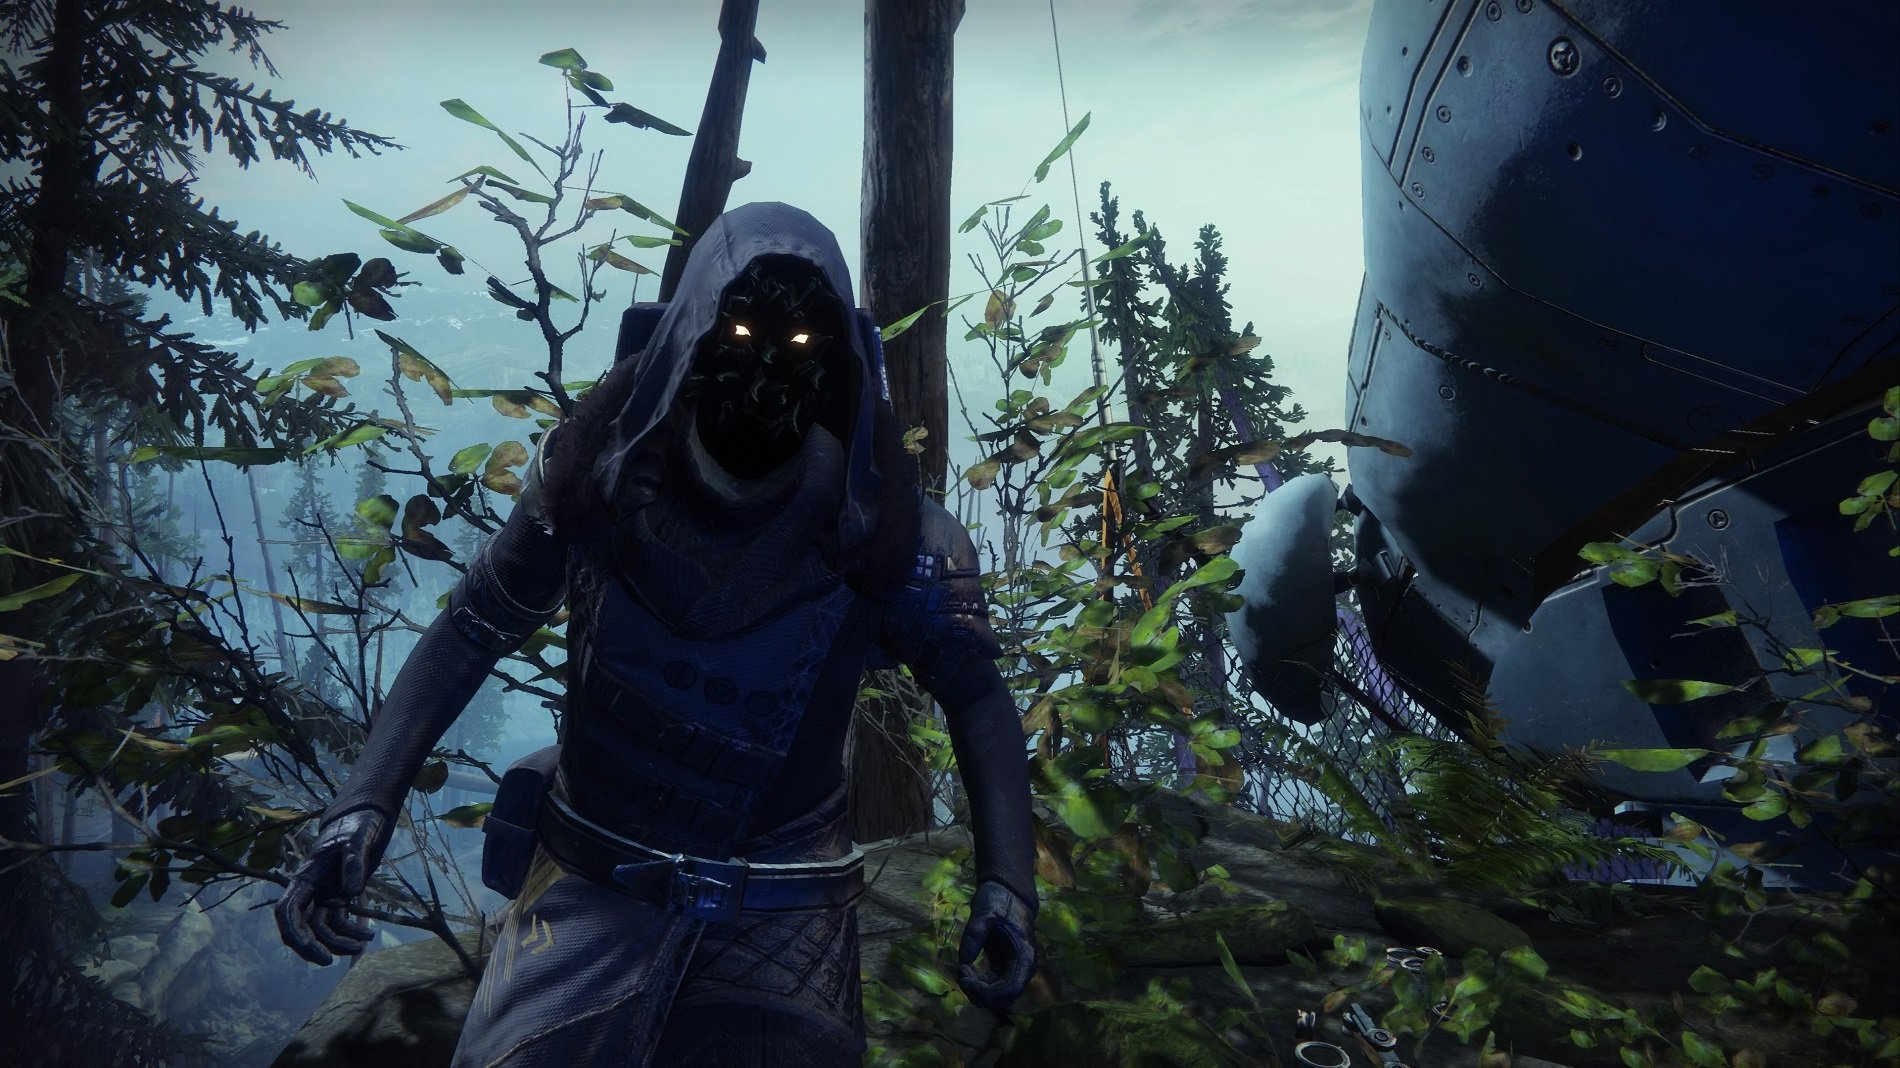 Where to find Xur in Destiny 2 - June 12, 2020